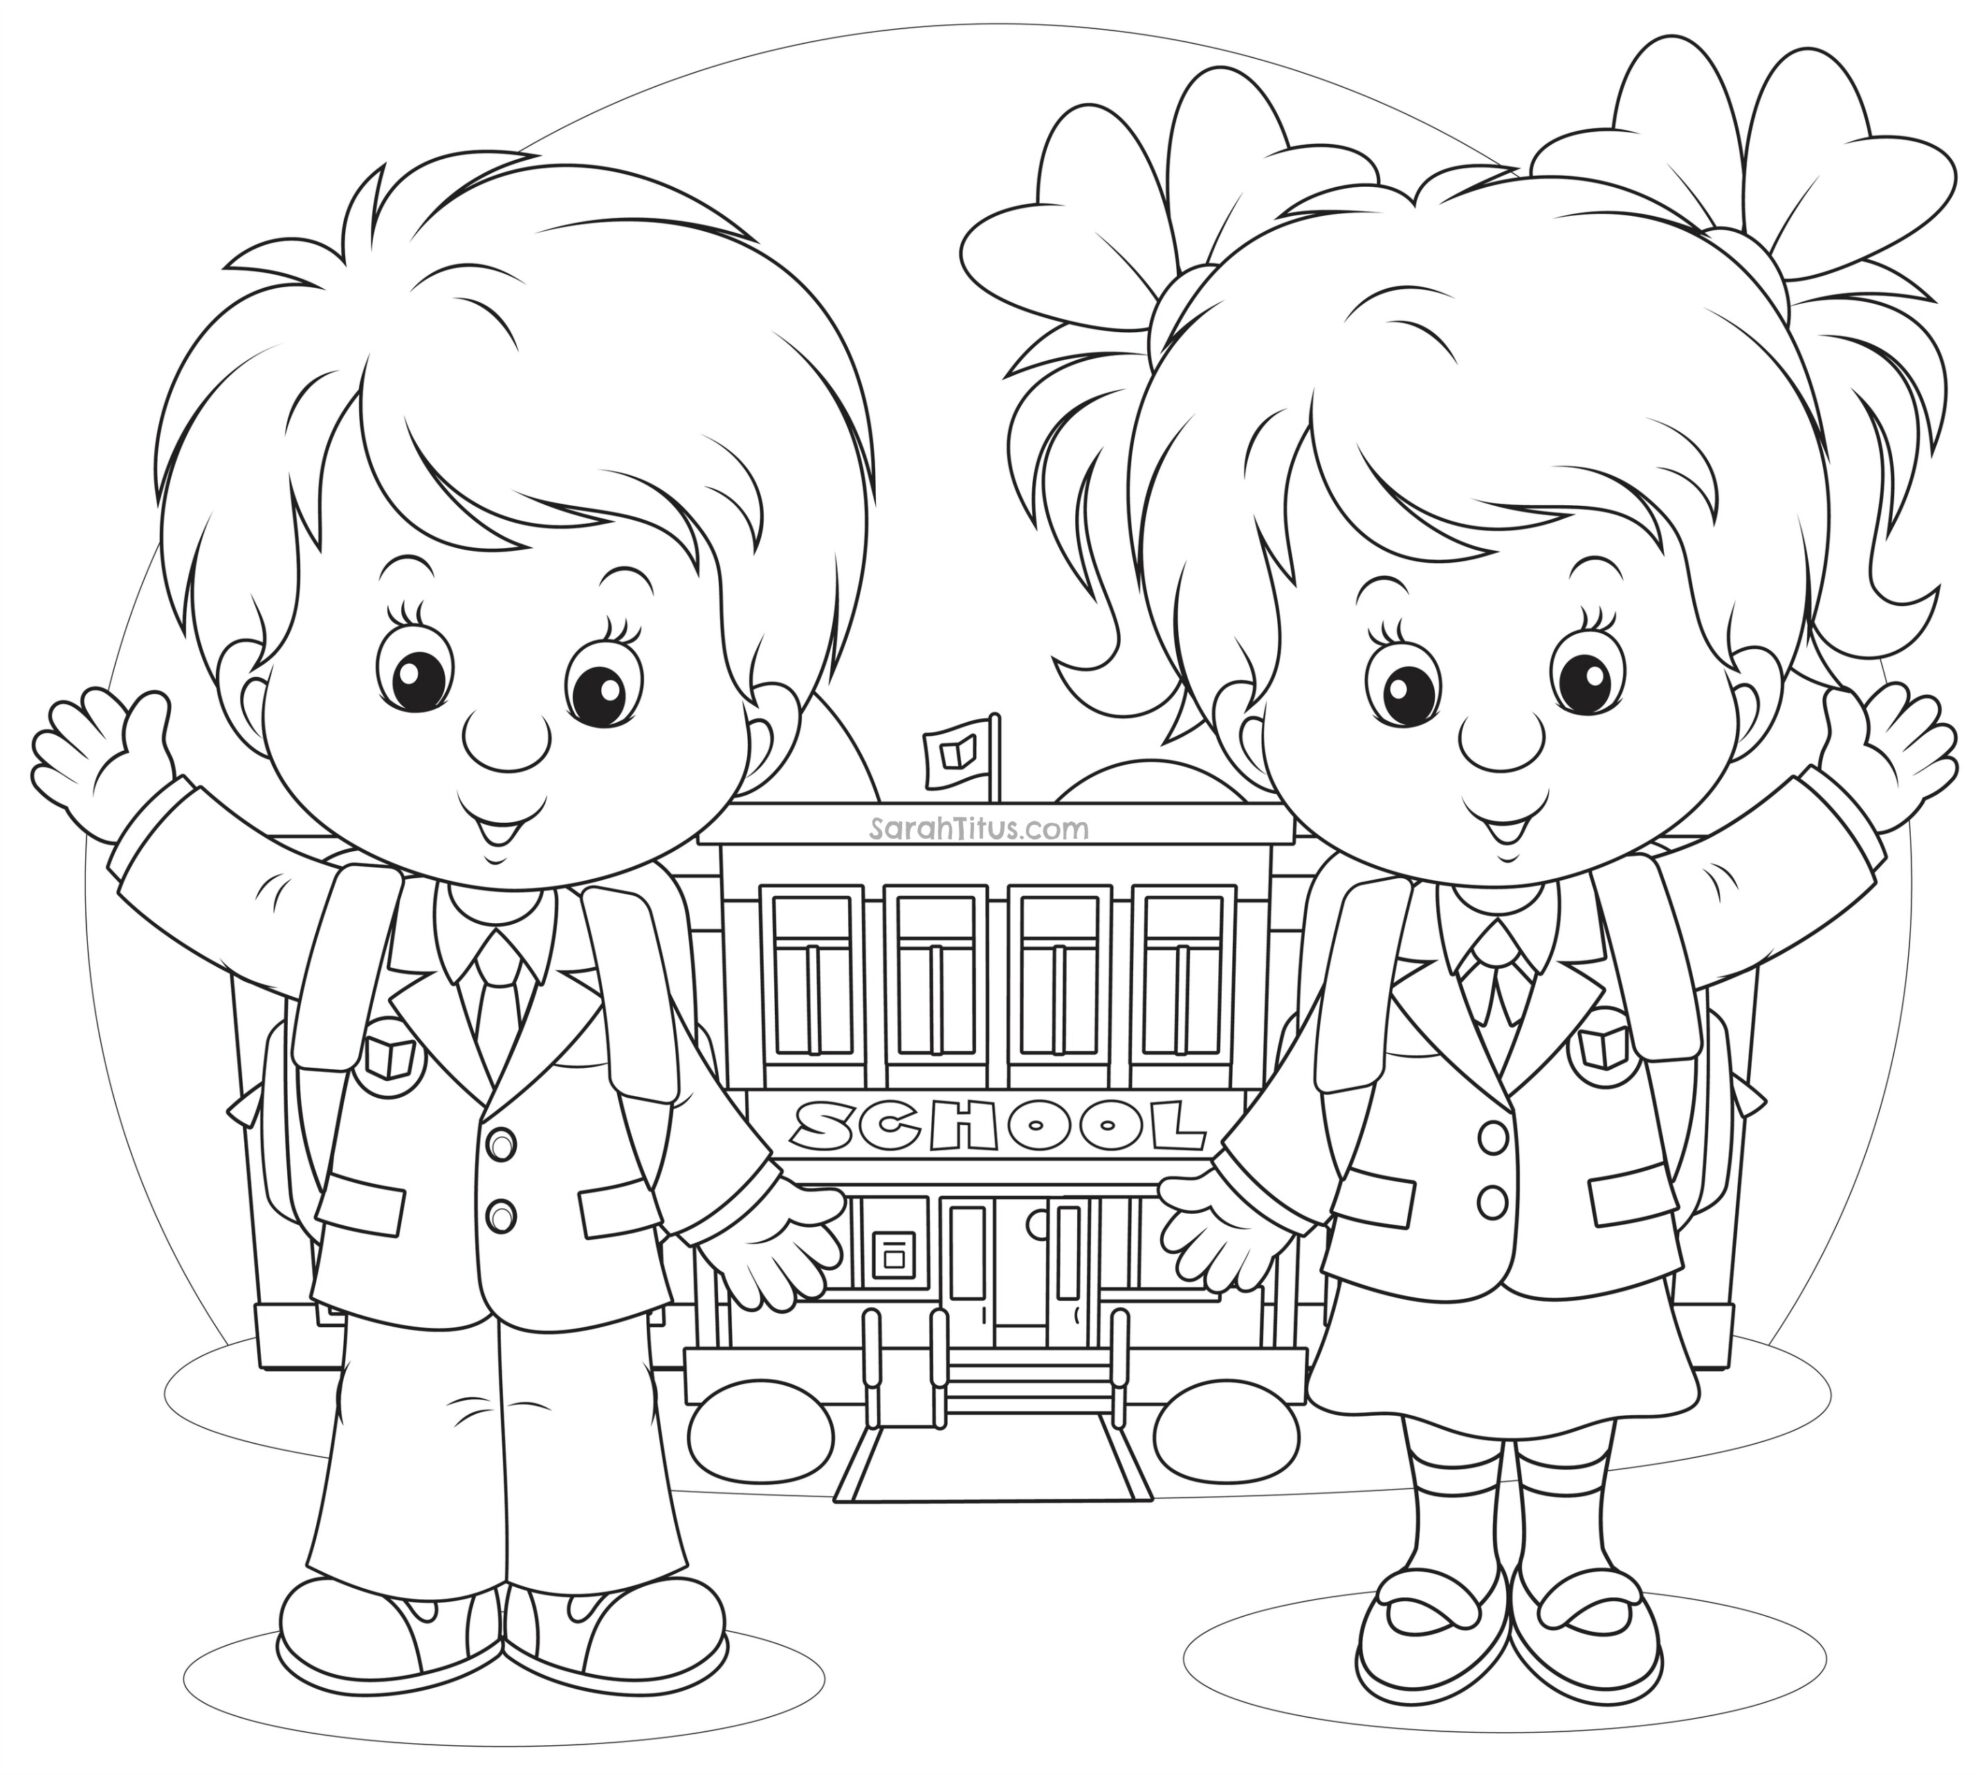 school clipart coloring back to school coloring pages sarah titus school coloring clipart